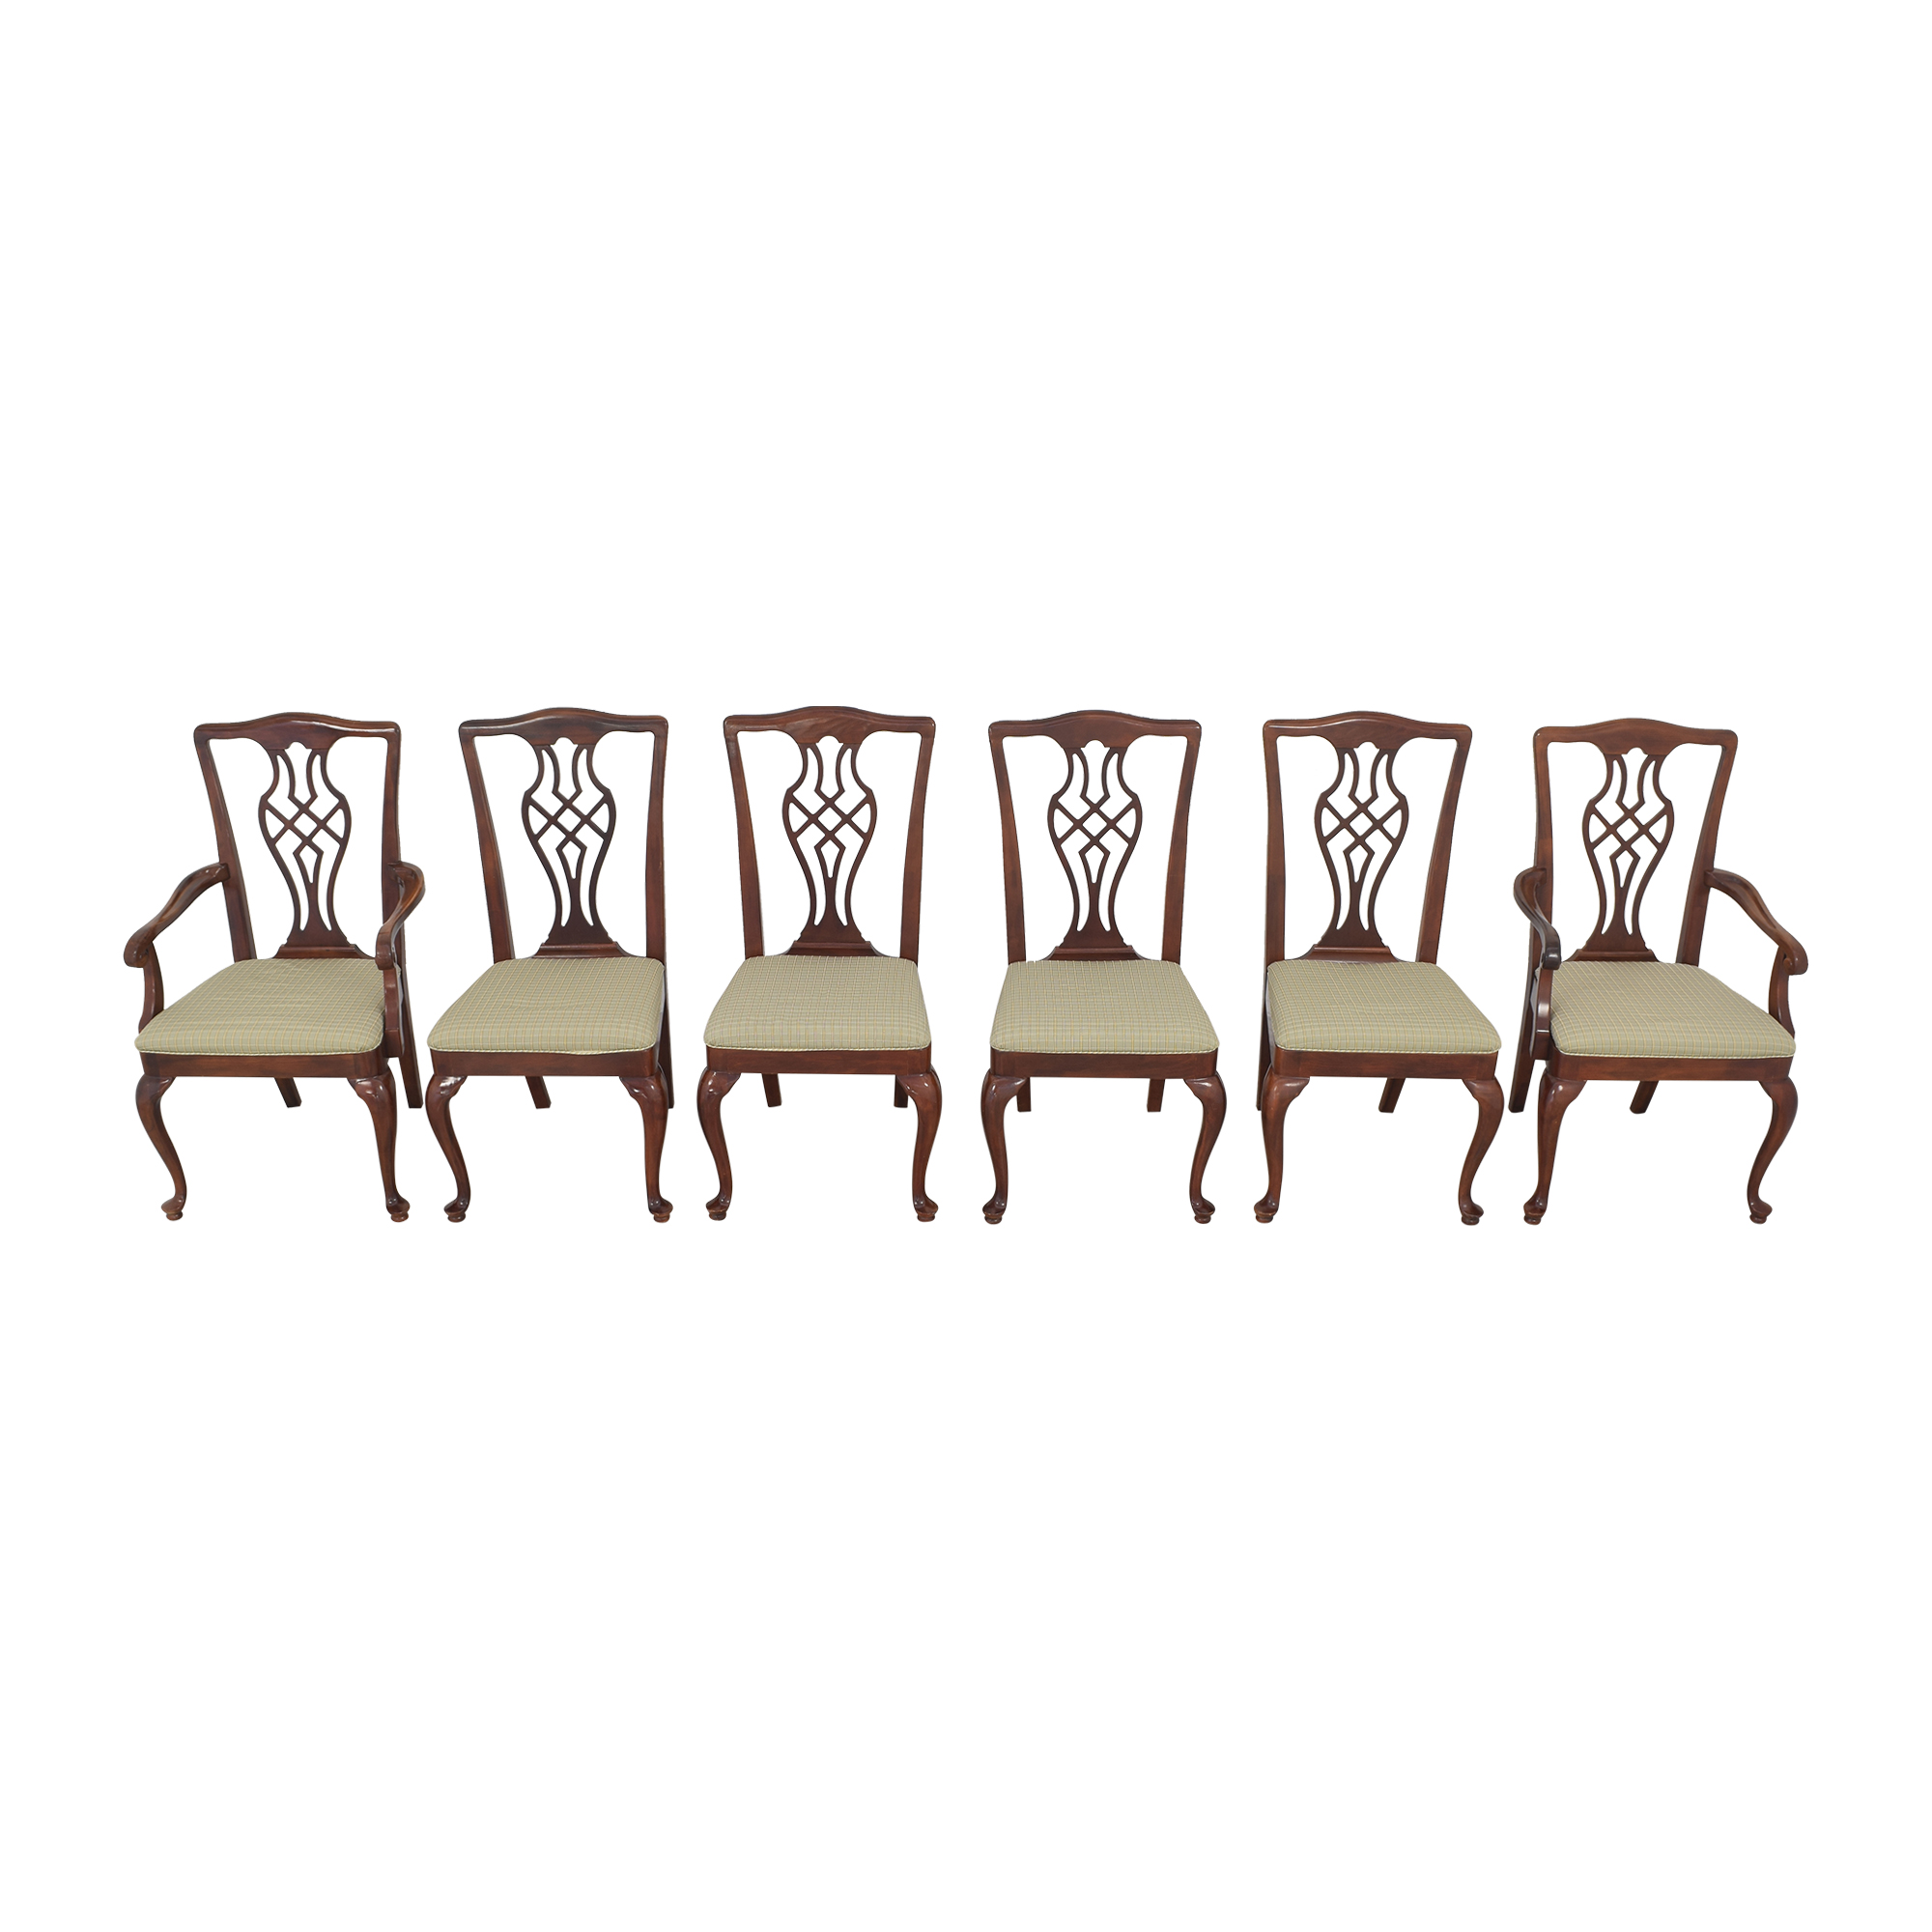 buy Drexel Upholstered Dining Chairs Drexel Heritage Chairs